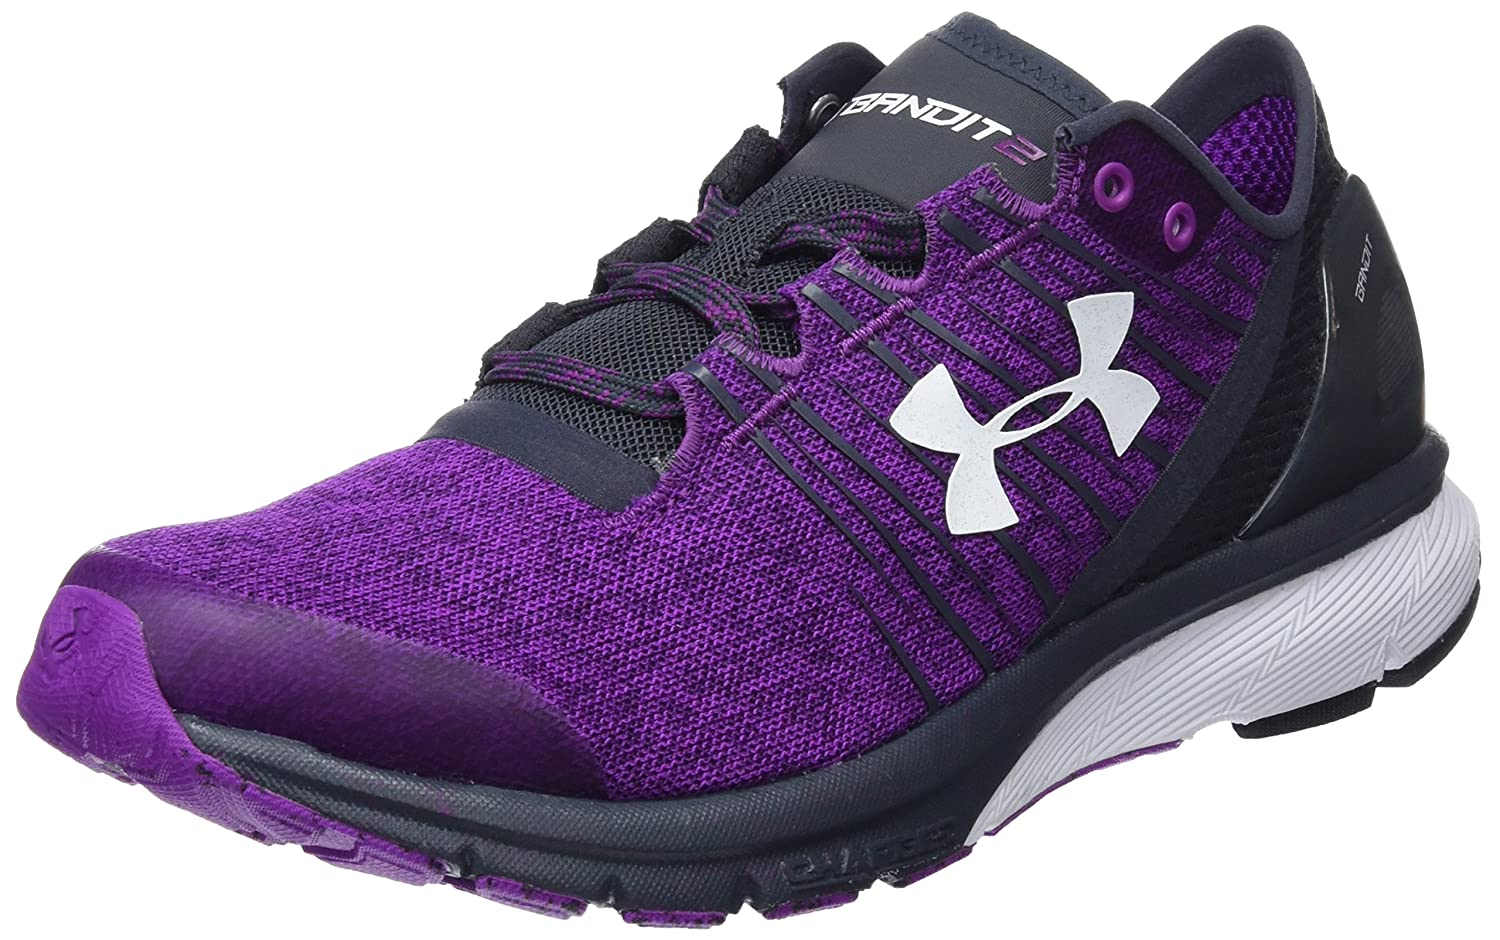 TALLA 35.5 EU. Under Armour Charged Bandit 2 Women's Zapatillas Para Correr - AW16